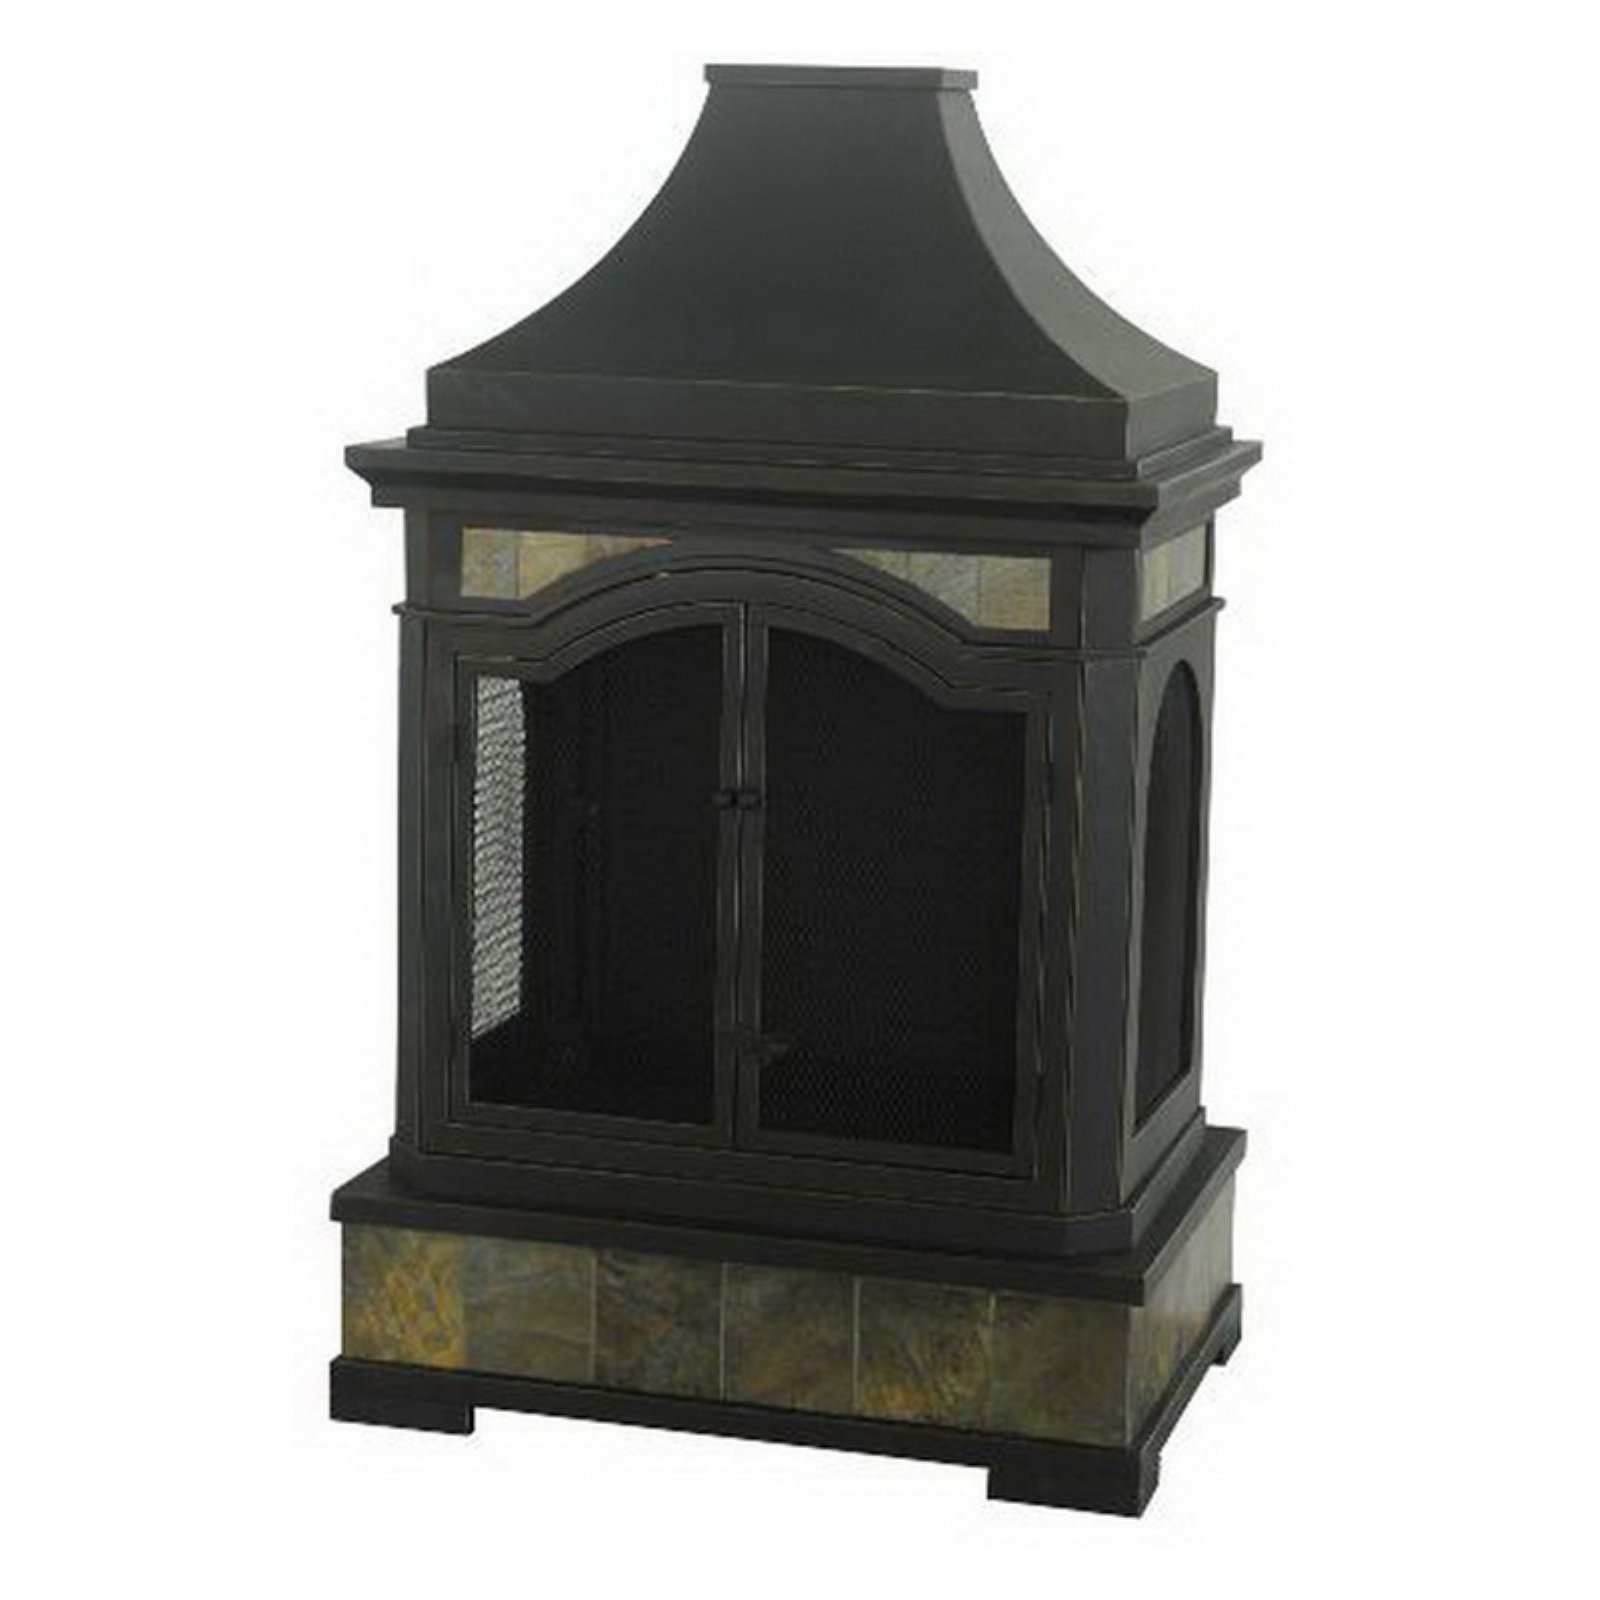 Sunjoy Outdoor Fireplace Replacement Parts